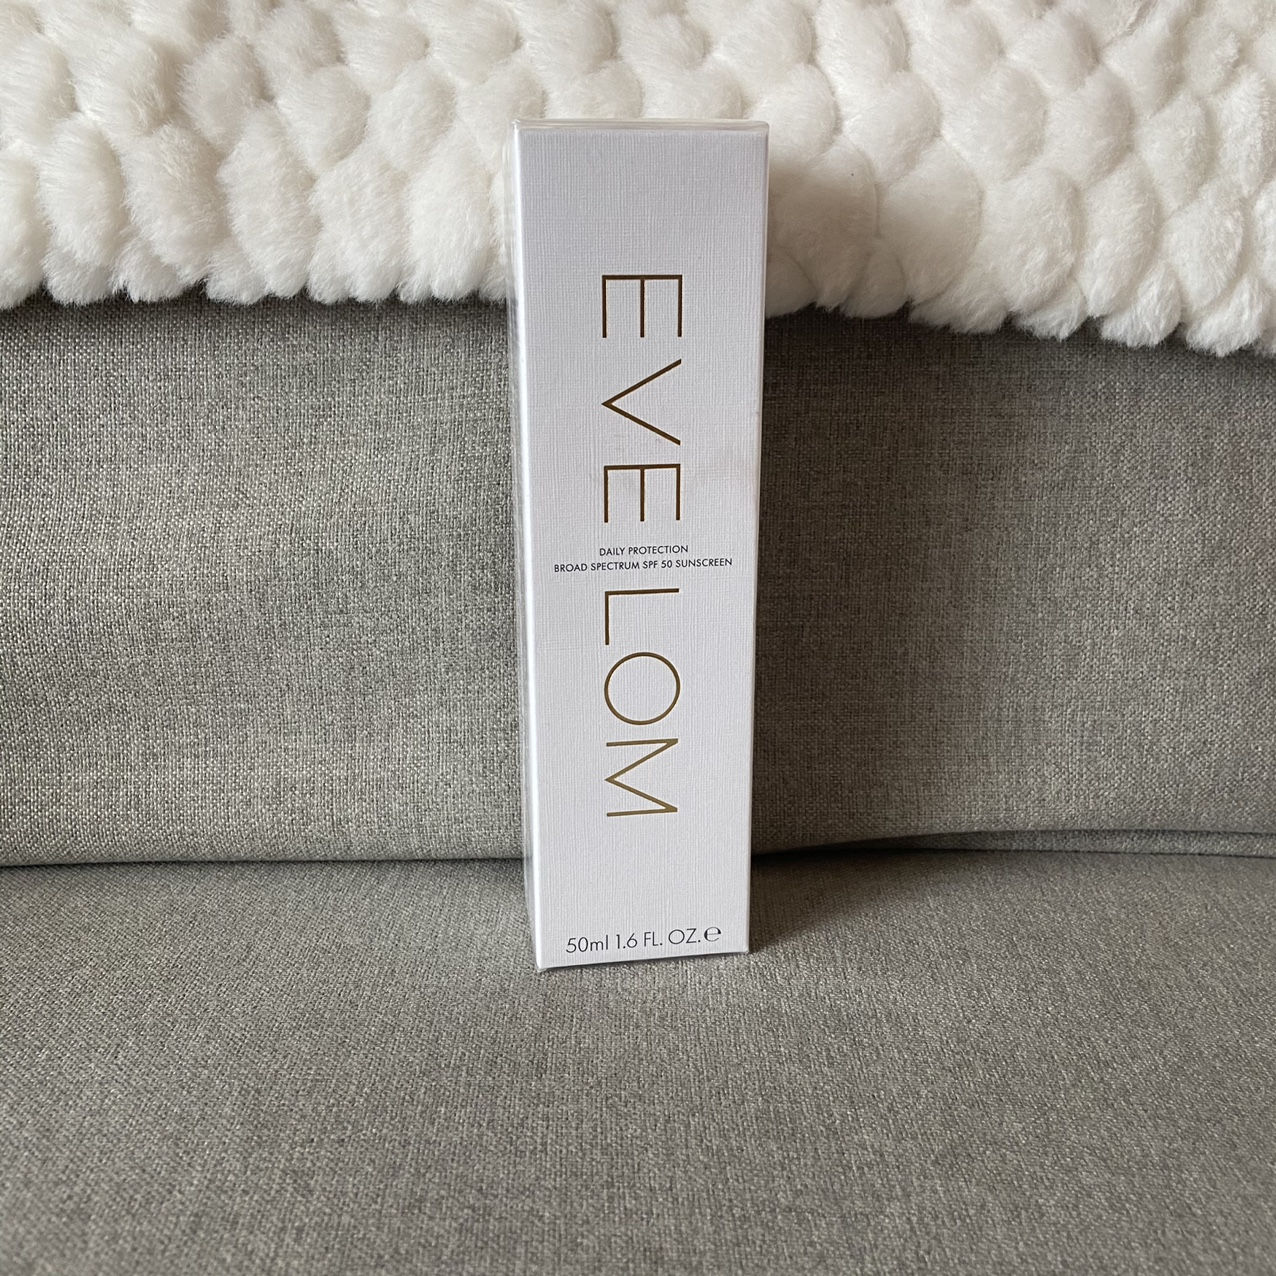 Product Image 1 - New in packaging Eve Lom